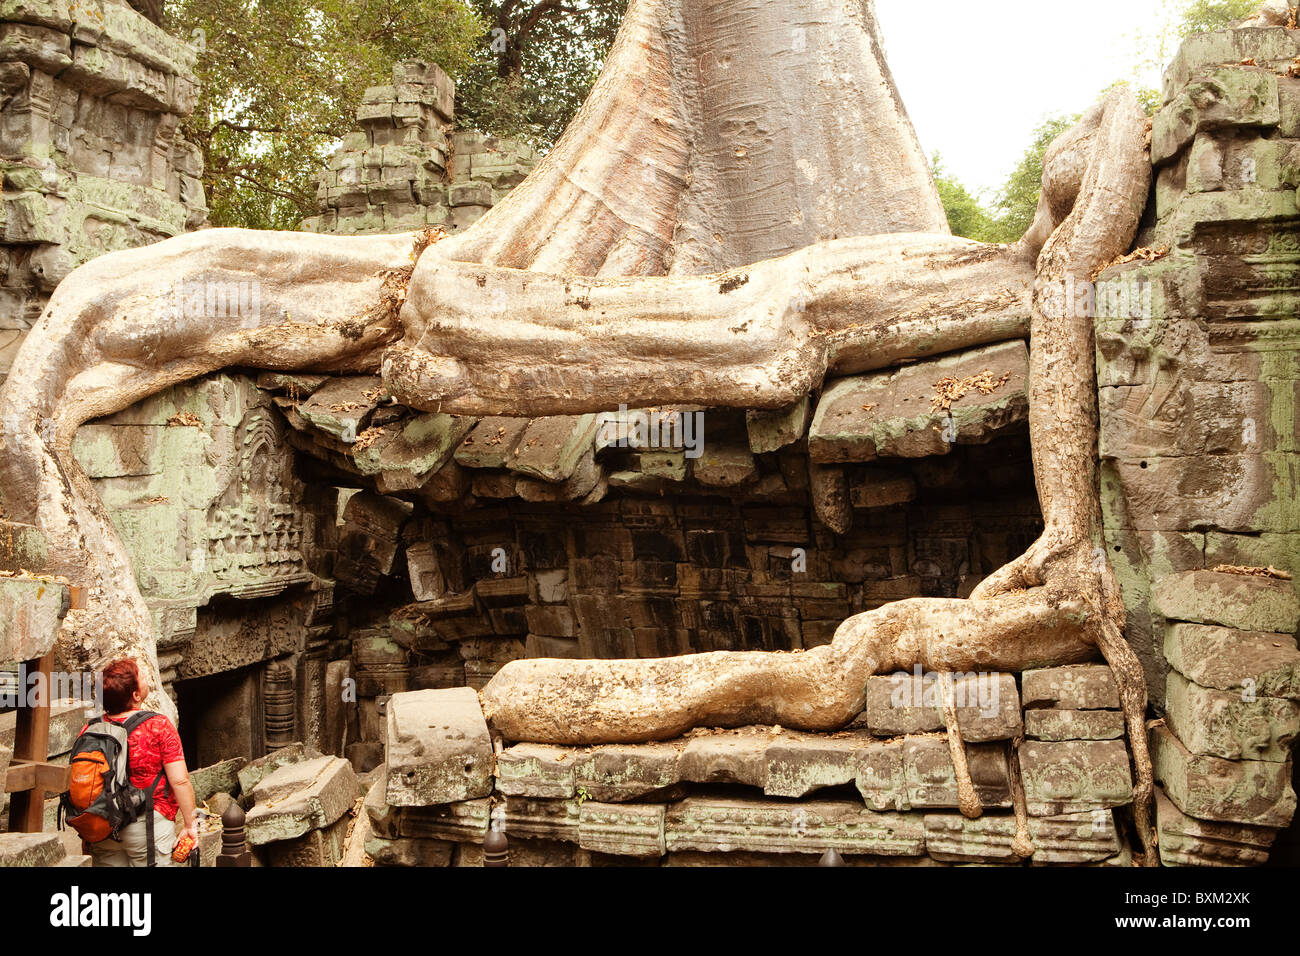 The Tetrameles nudiflora tree engulfs Ta Prohm Temple in the Angkor Temple Complex Stock Photo